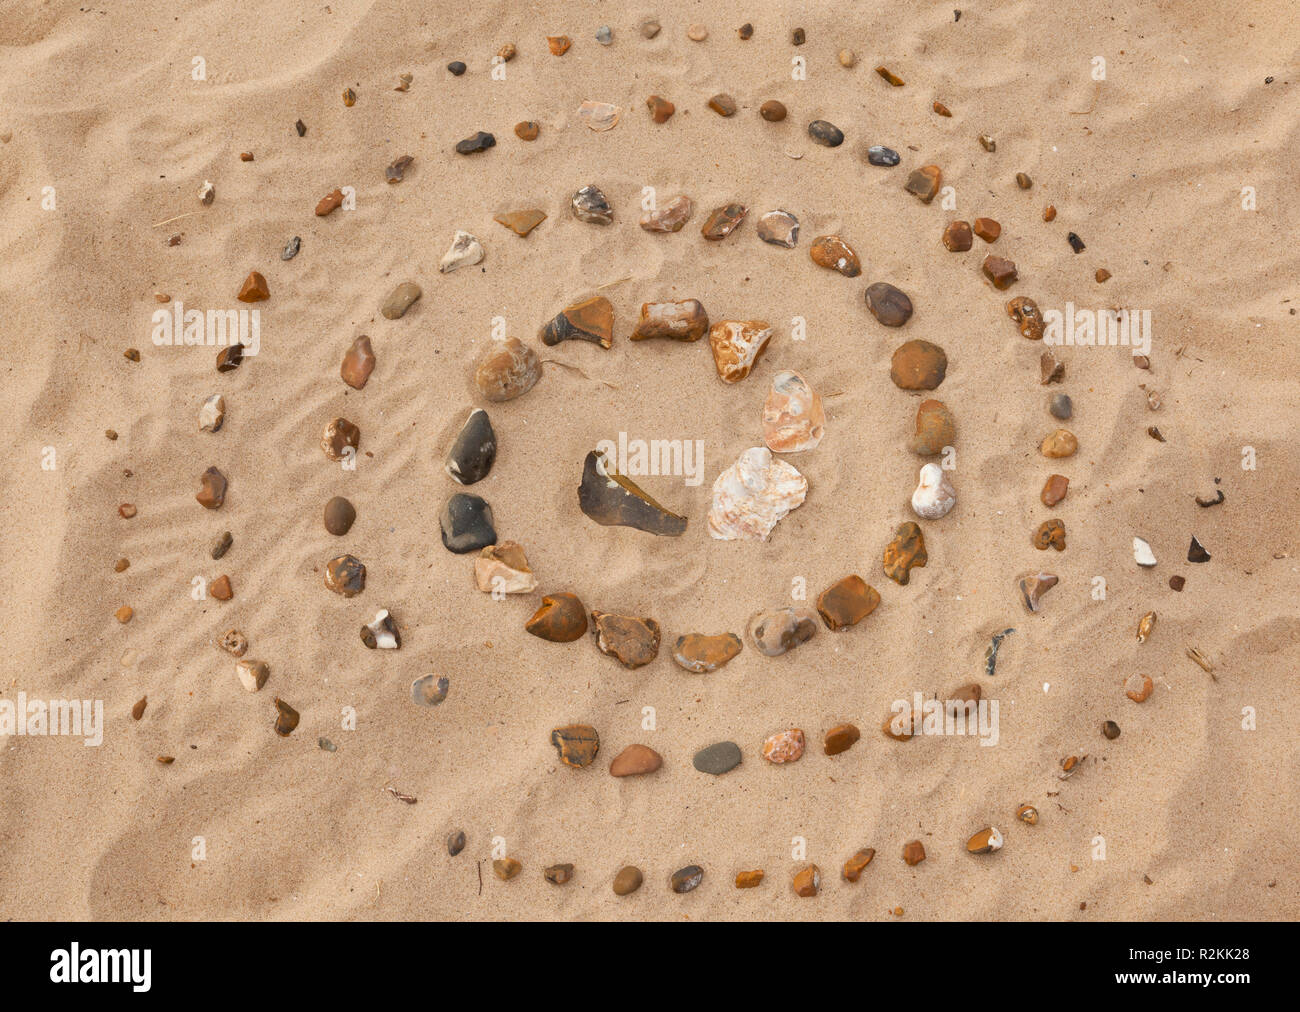 A Labyrinth made of small stones on a sandy beach Stock Photo